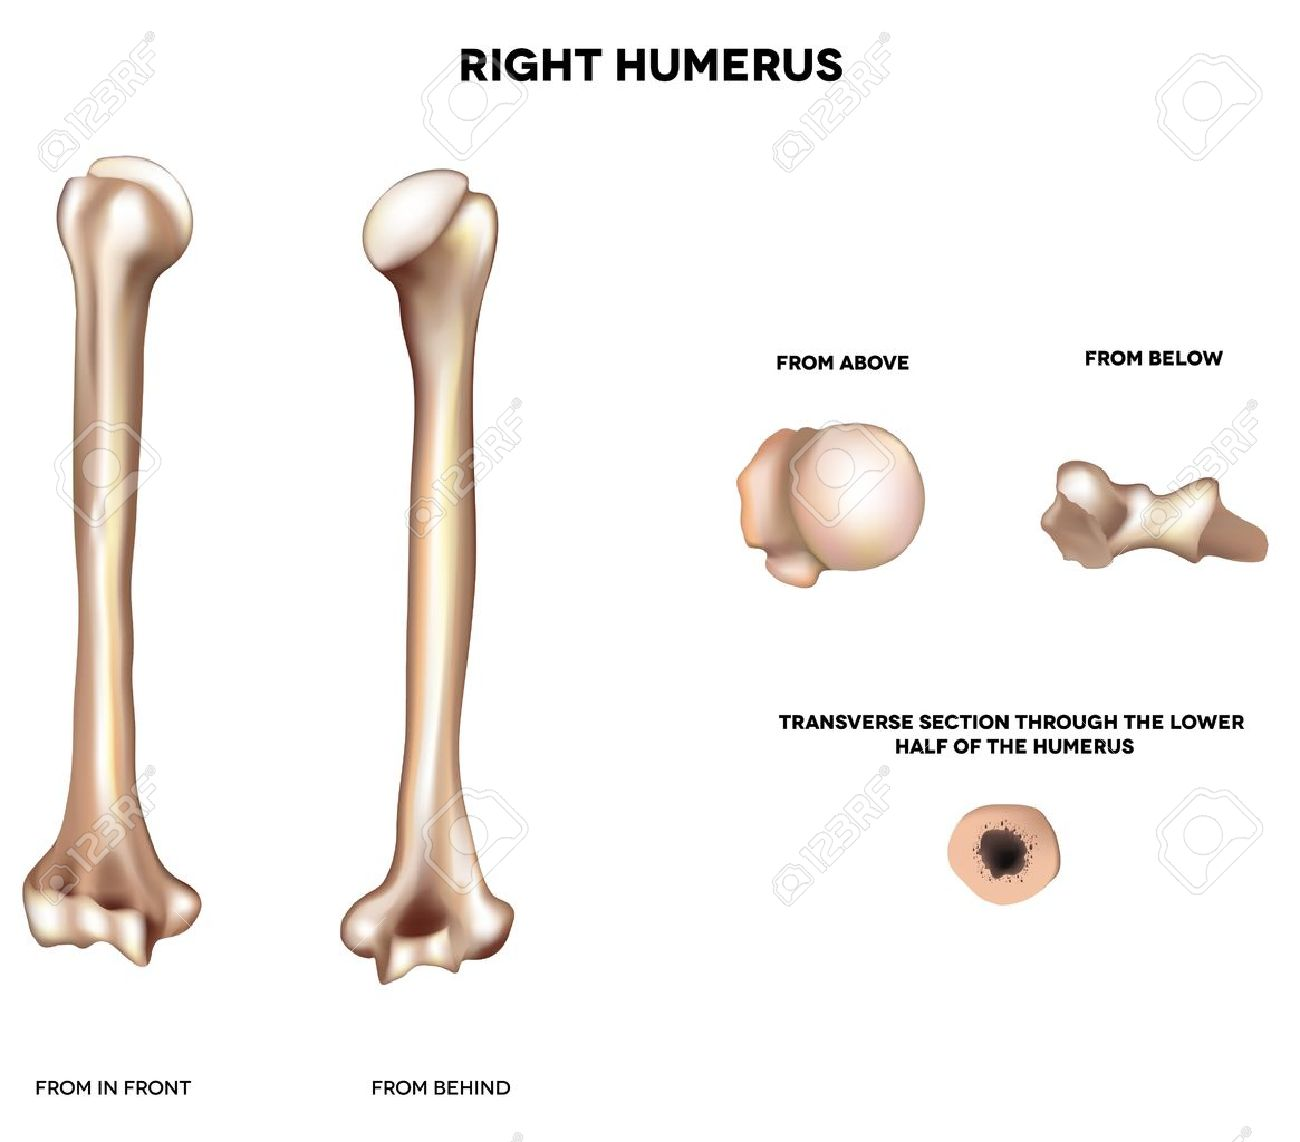 humerus- upper arm bone detailed medical illustration from front, Cephalic Vein